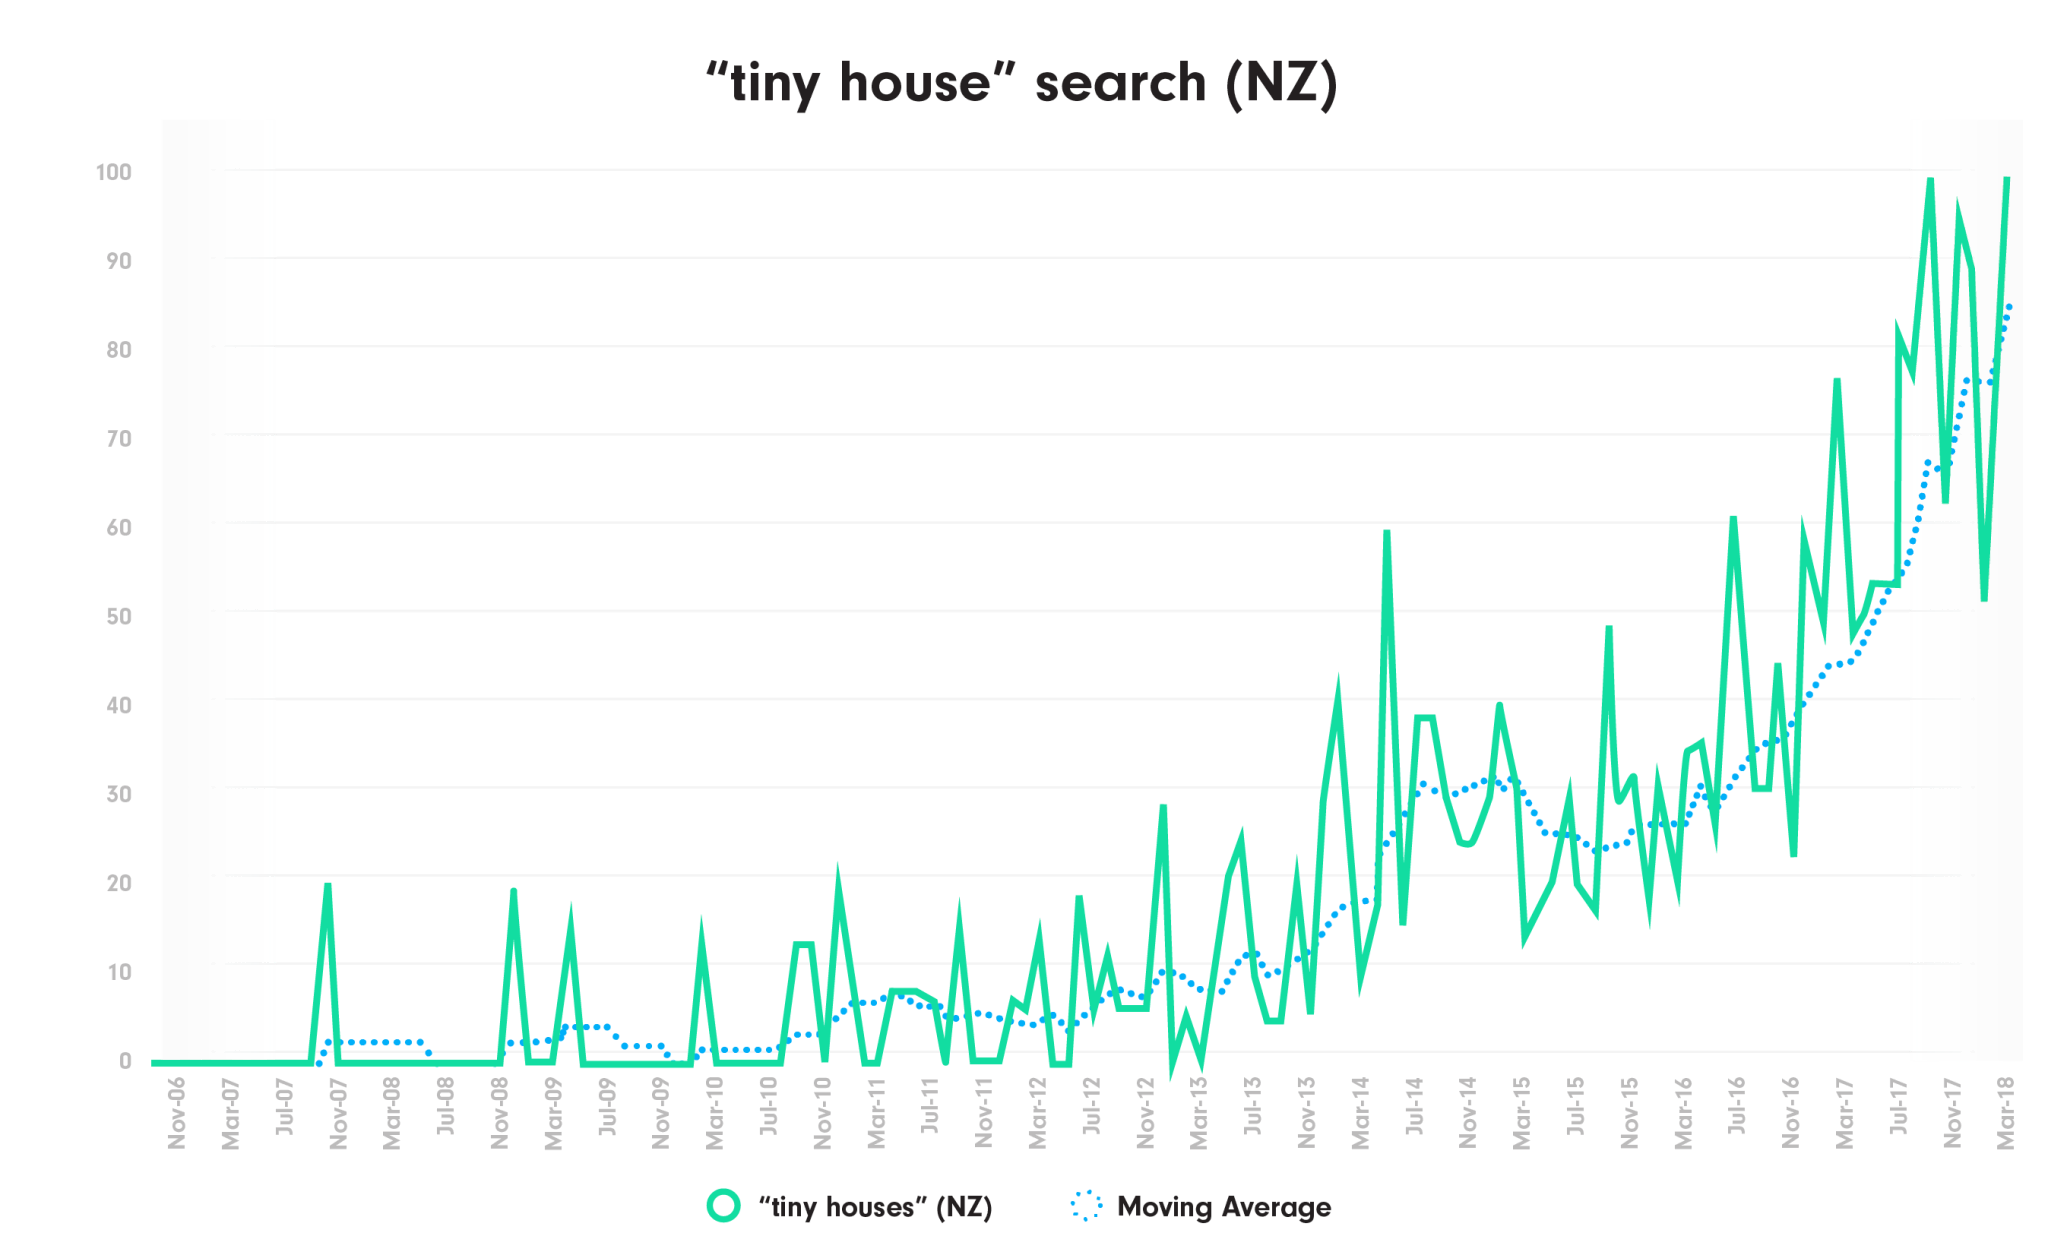 Tiny house trend increasing in NZ graph